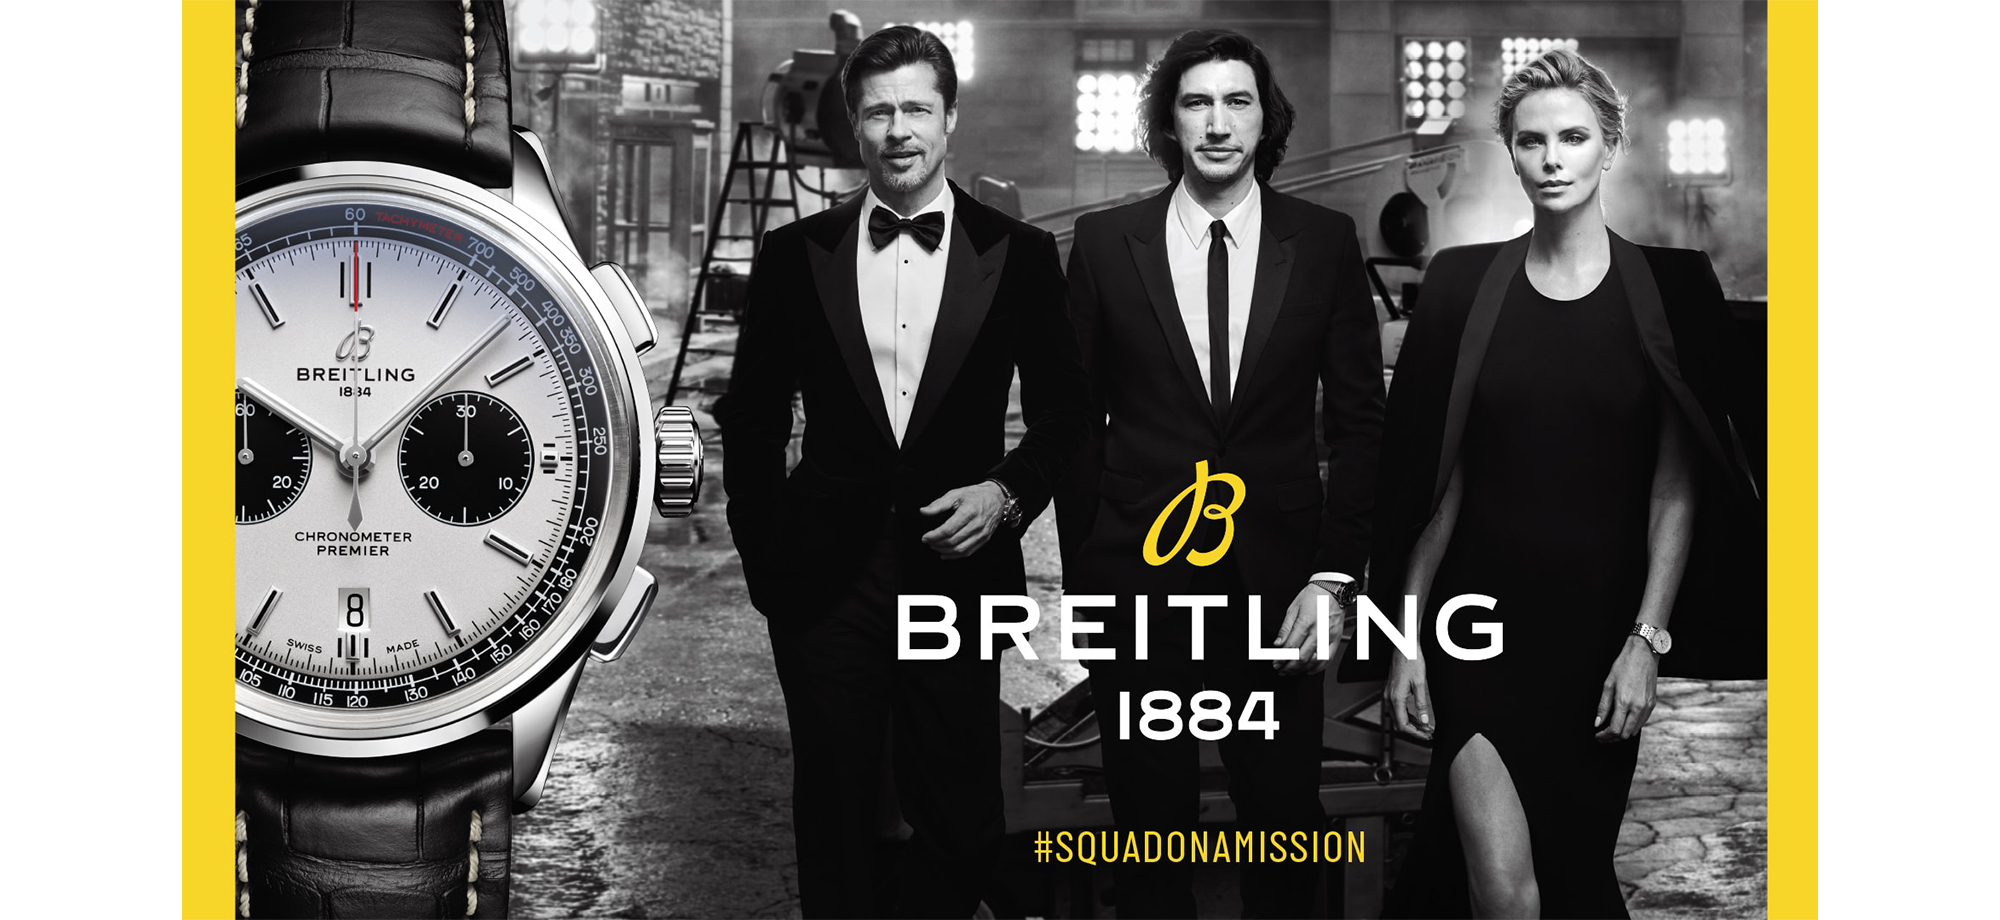 Acceuil-Breitling-Hall-of-Time-Bruxelles-Montres